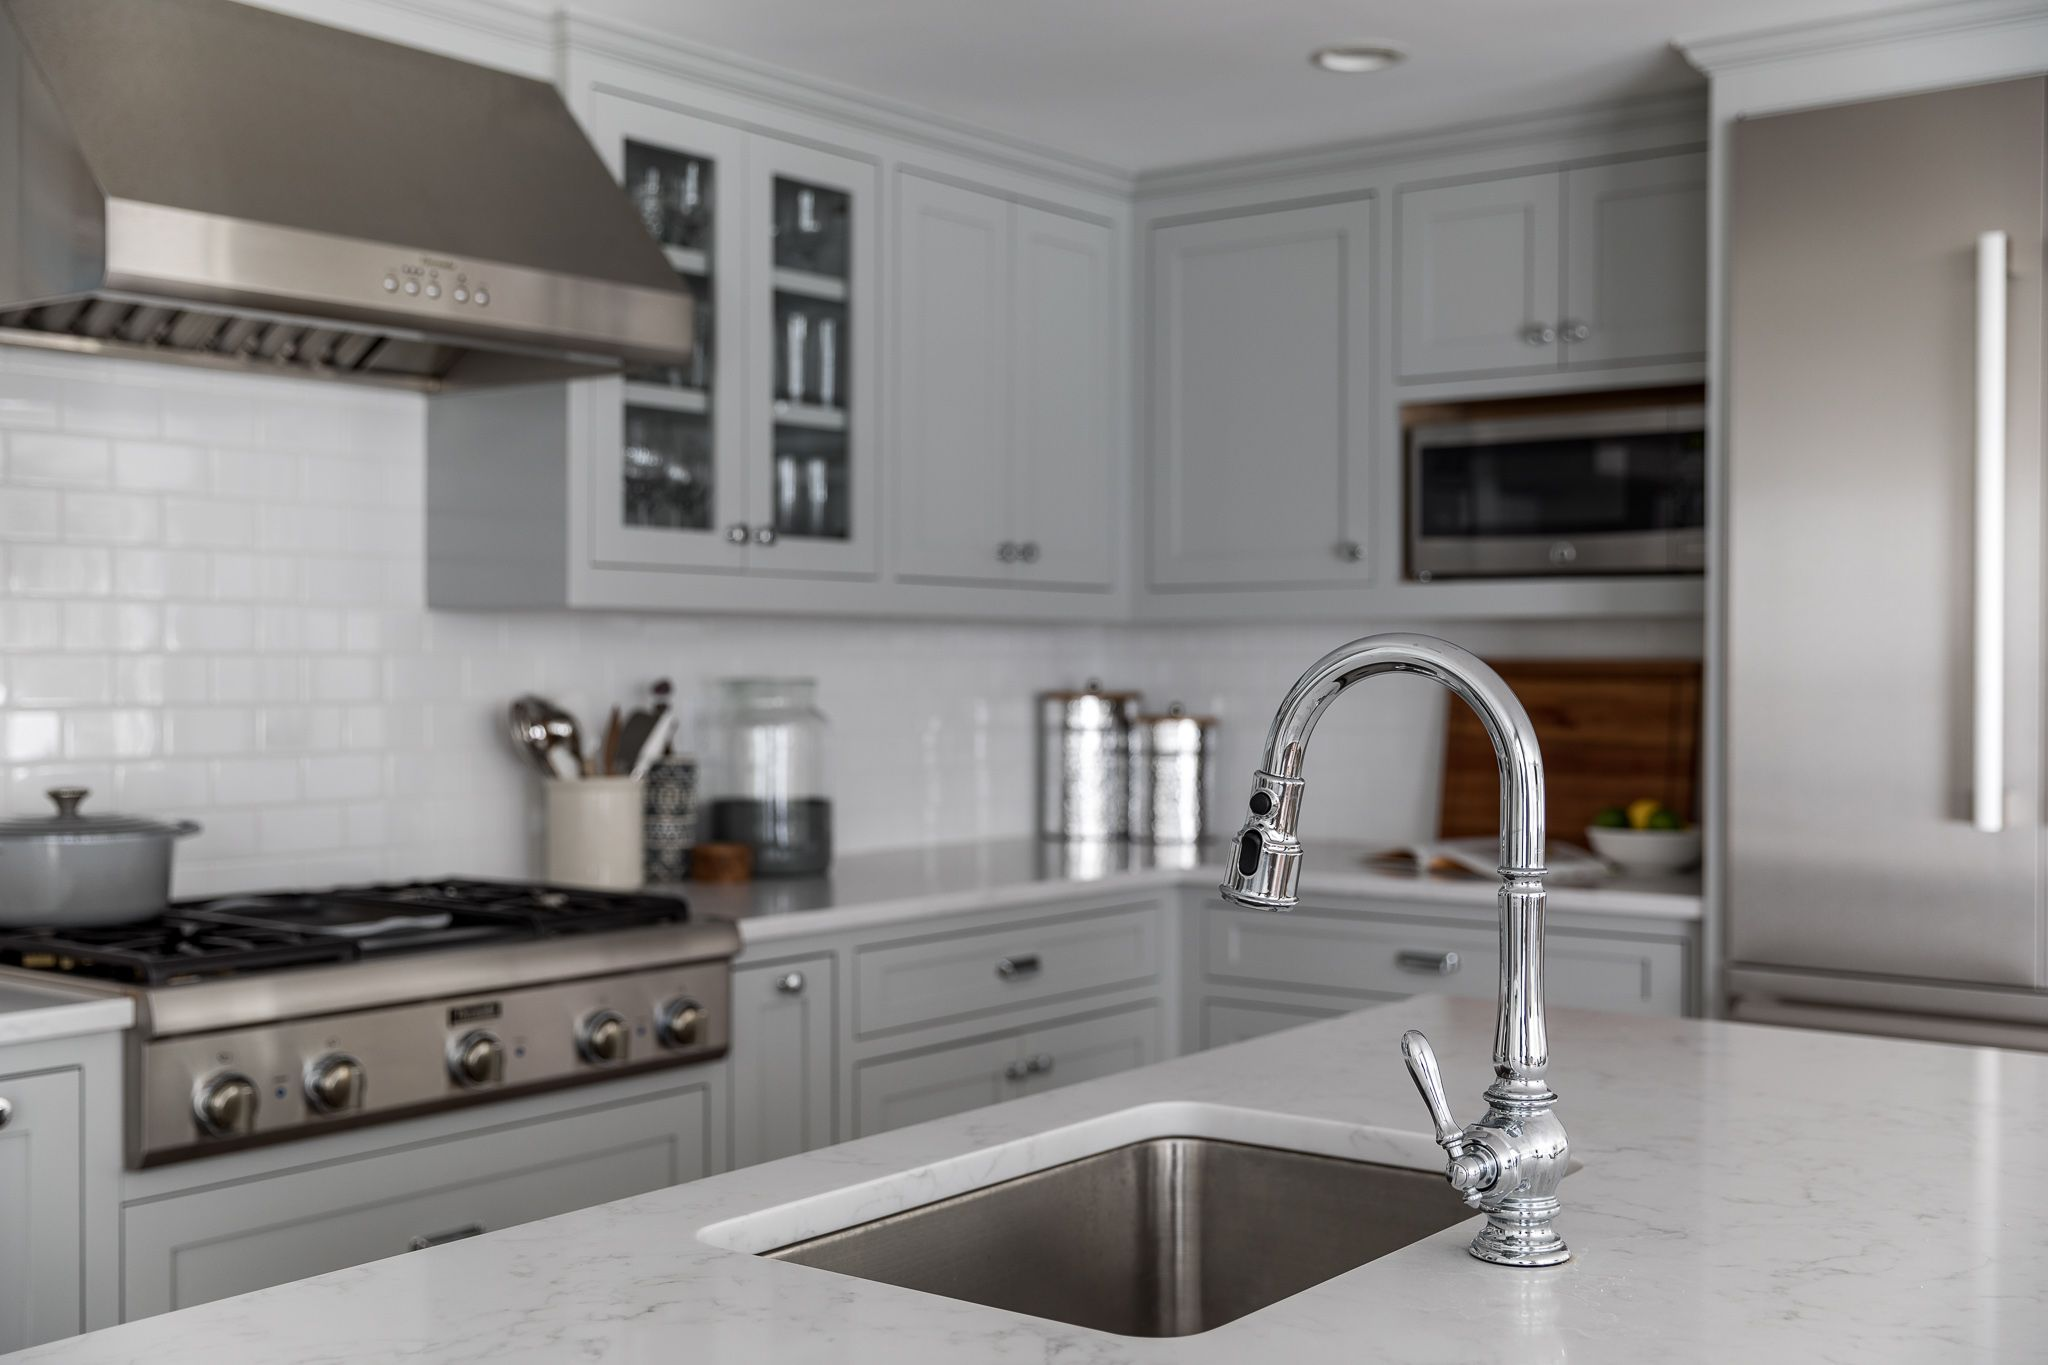 Metropolitan Benjamin Moore Woods End Project Kitchen Remodel Quartz Counters Gray Kitchen